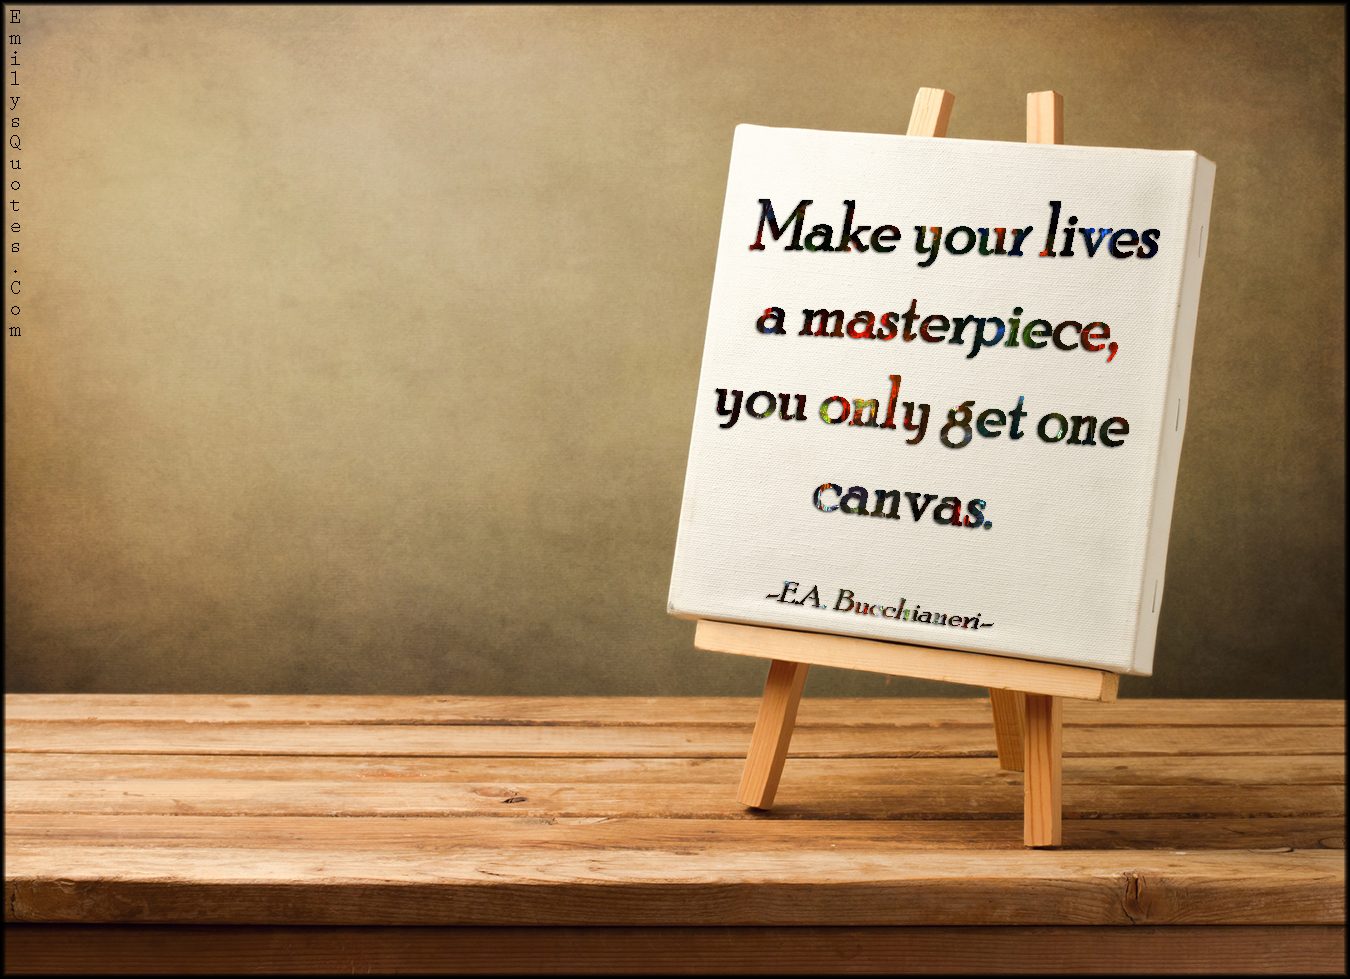 EmilysQuotes.Com - life, masterpiece, canvas, inspirational, advice, E.A. Bucchianeri